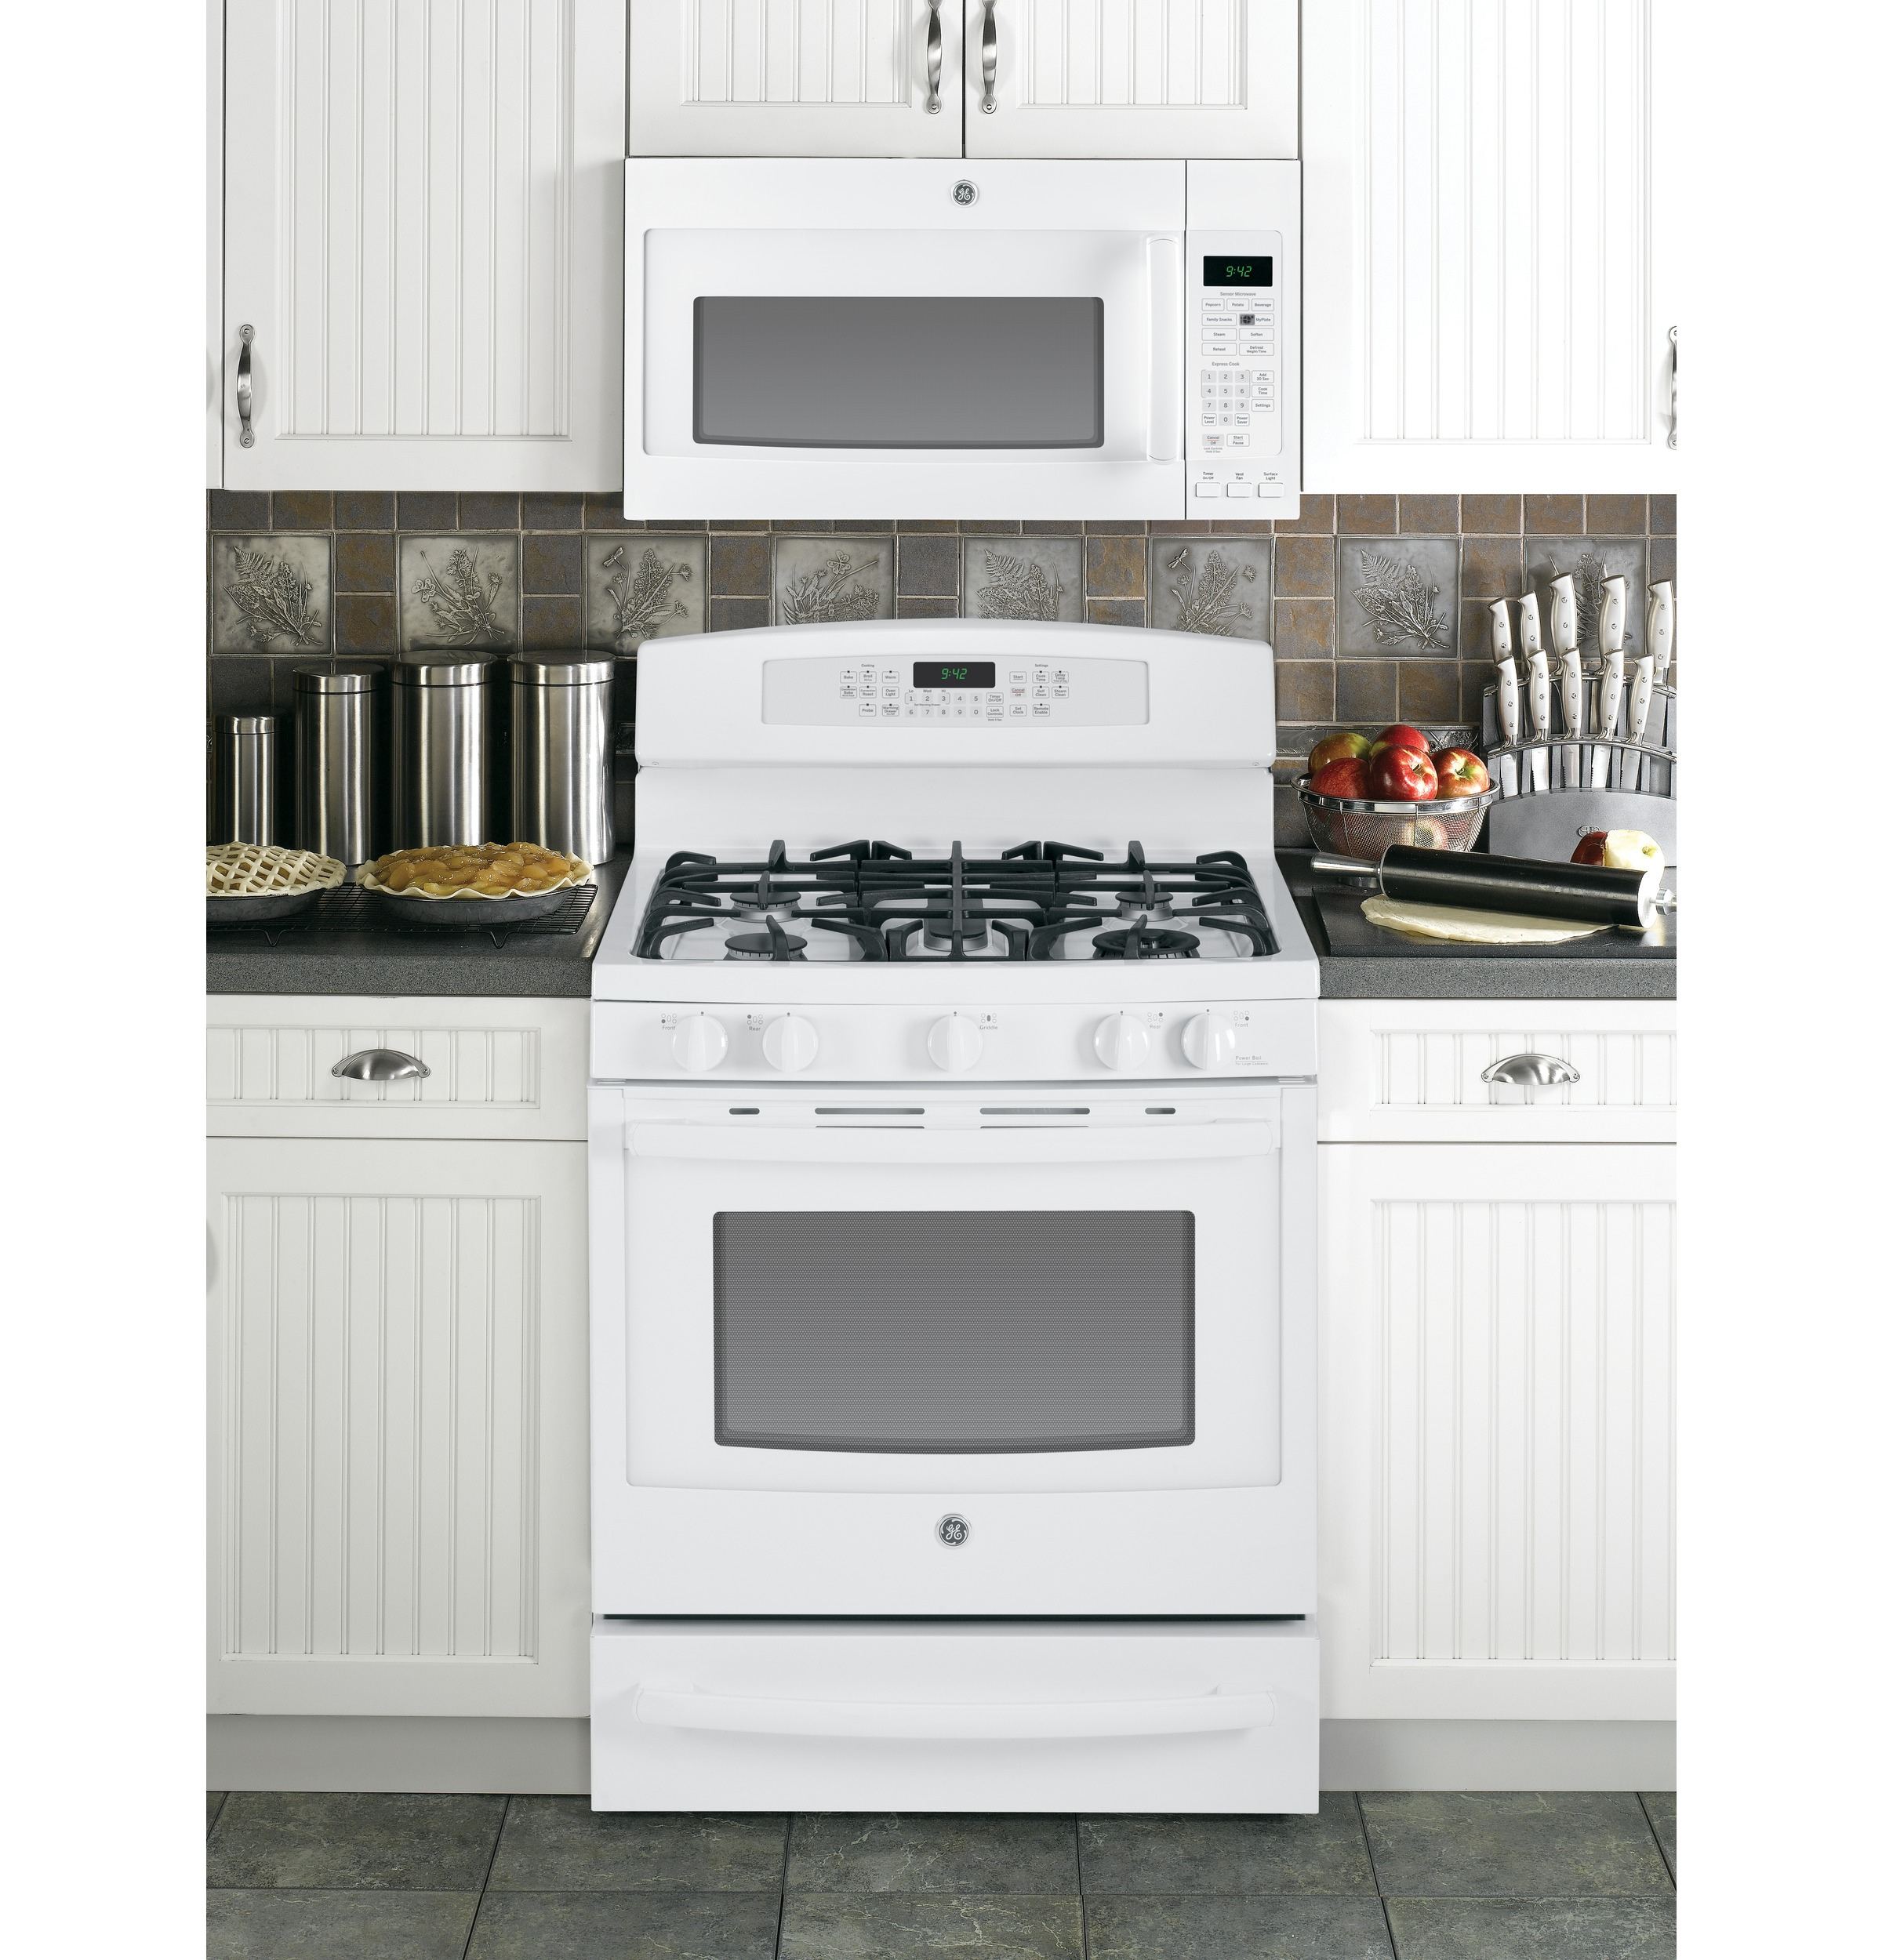 GE Profile 5.6 cu. ft. Dual-Fuel Freestanding Range w/ Warming Drawer - White